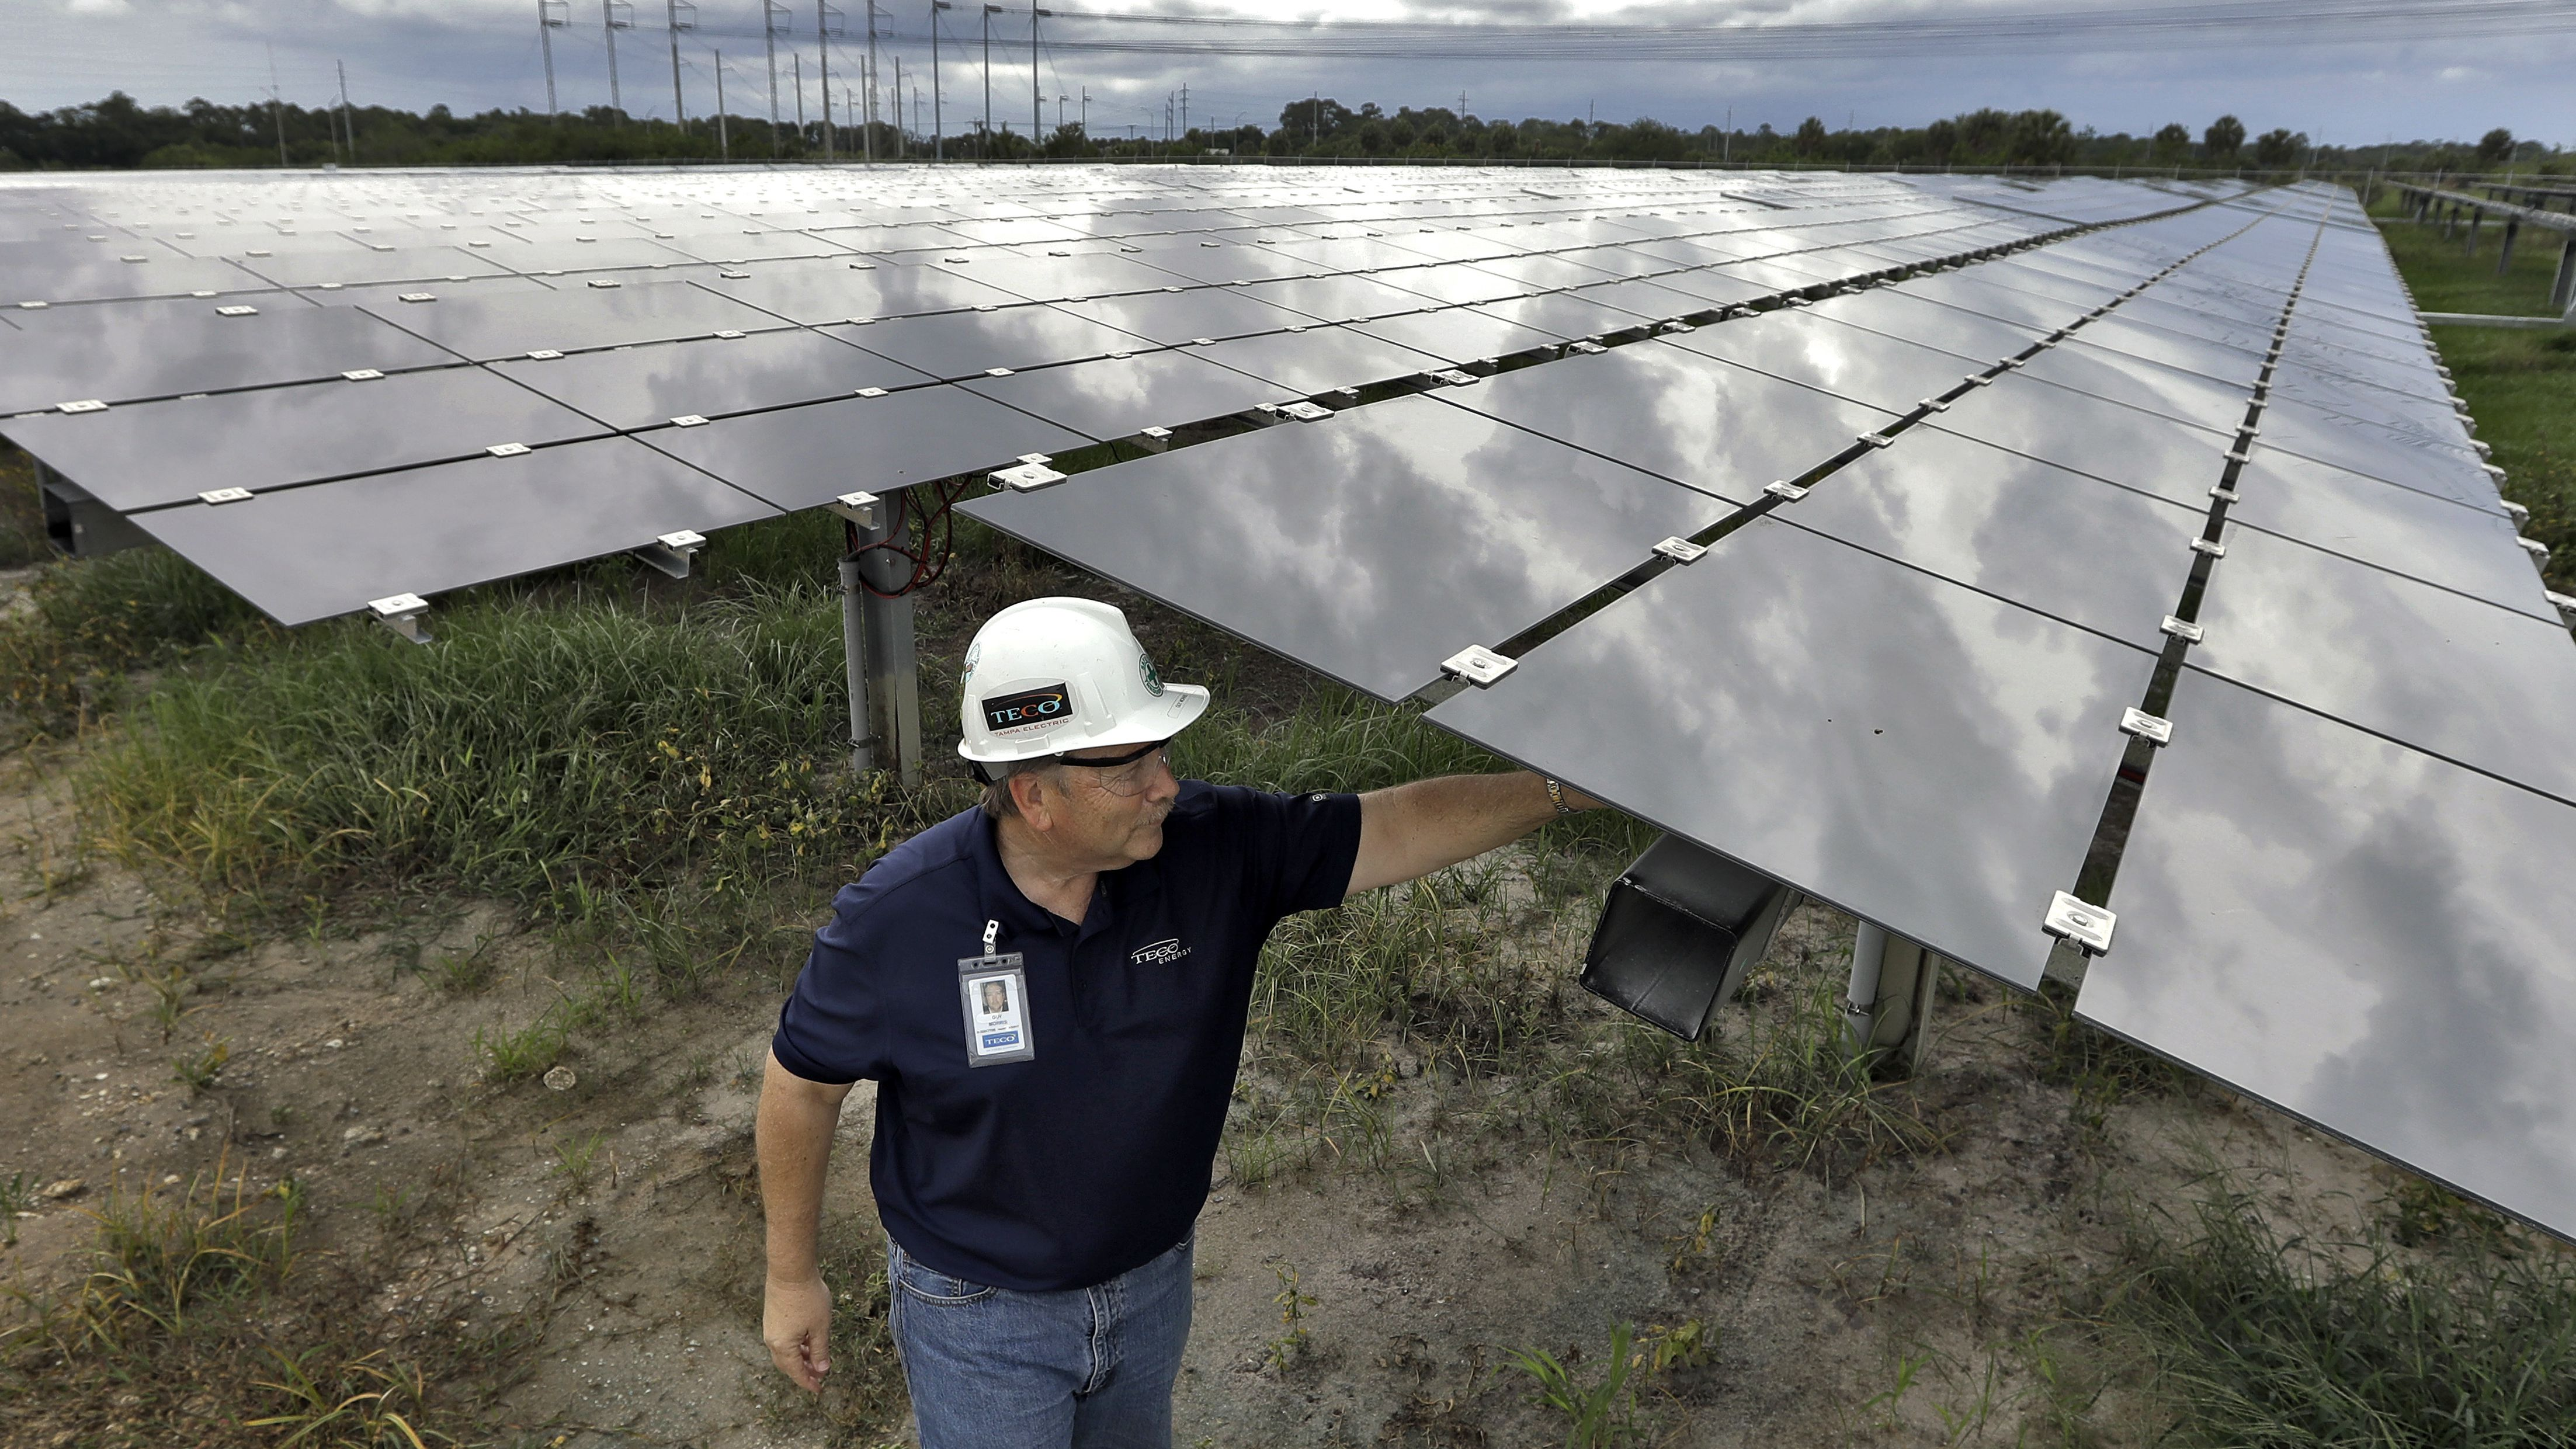 Guy Morris, project manager for the Tampa Electric Company's Big Bend Solar Station, adjusts some of the solar panels Friday, June 2, 2017, in Gibsonton, Fla. The panels at the station will power about 3,000 homes in the area. (AP Photo/Chris O'Meara)